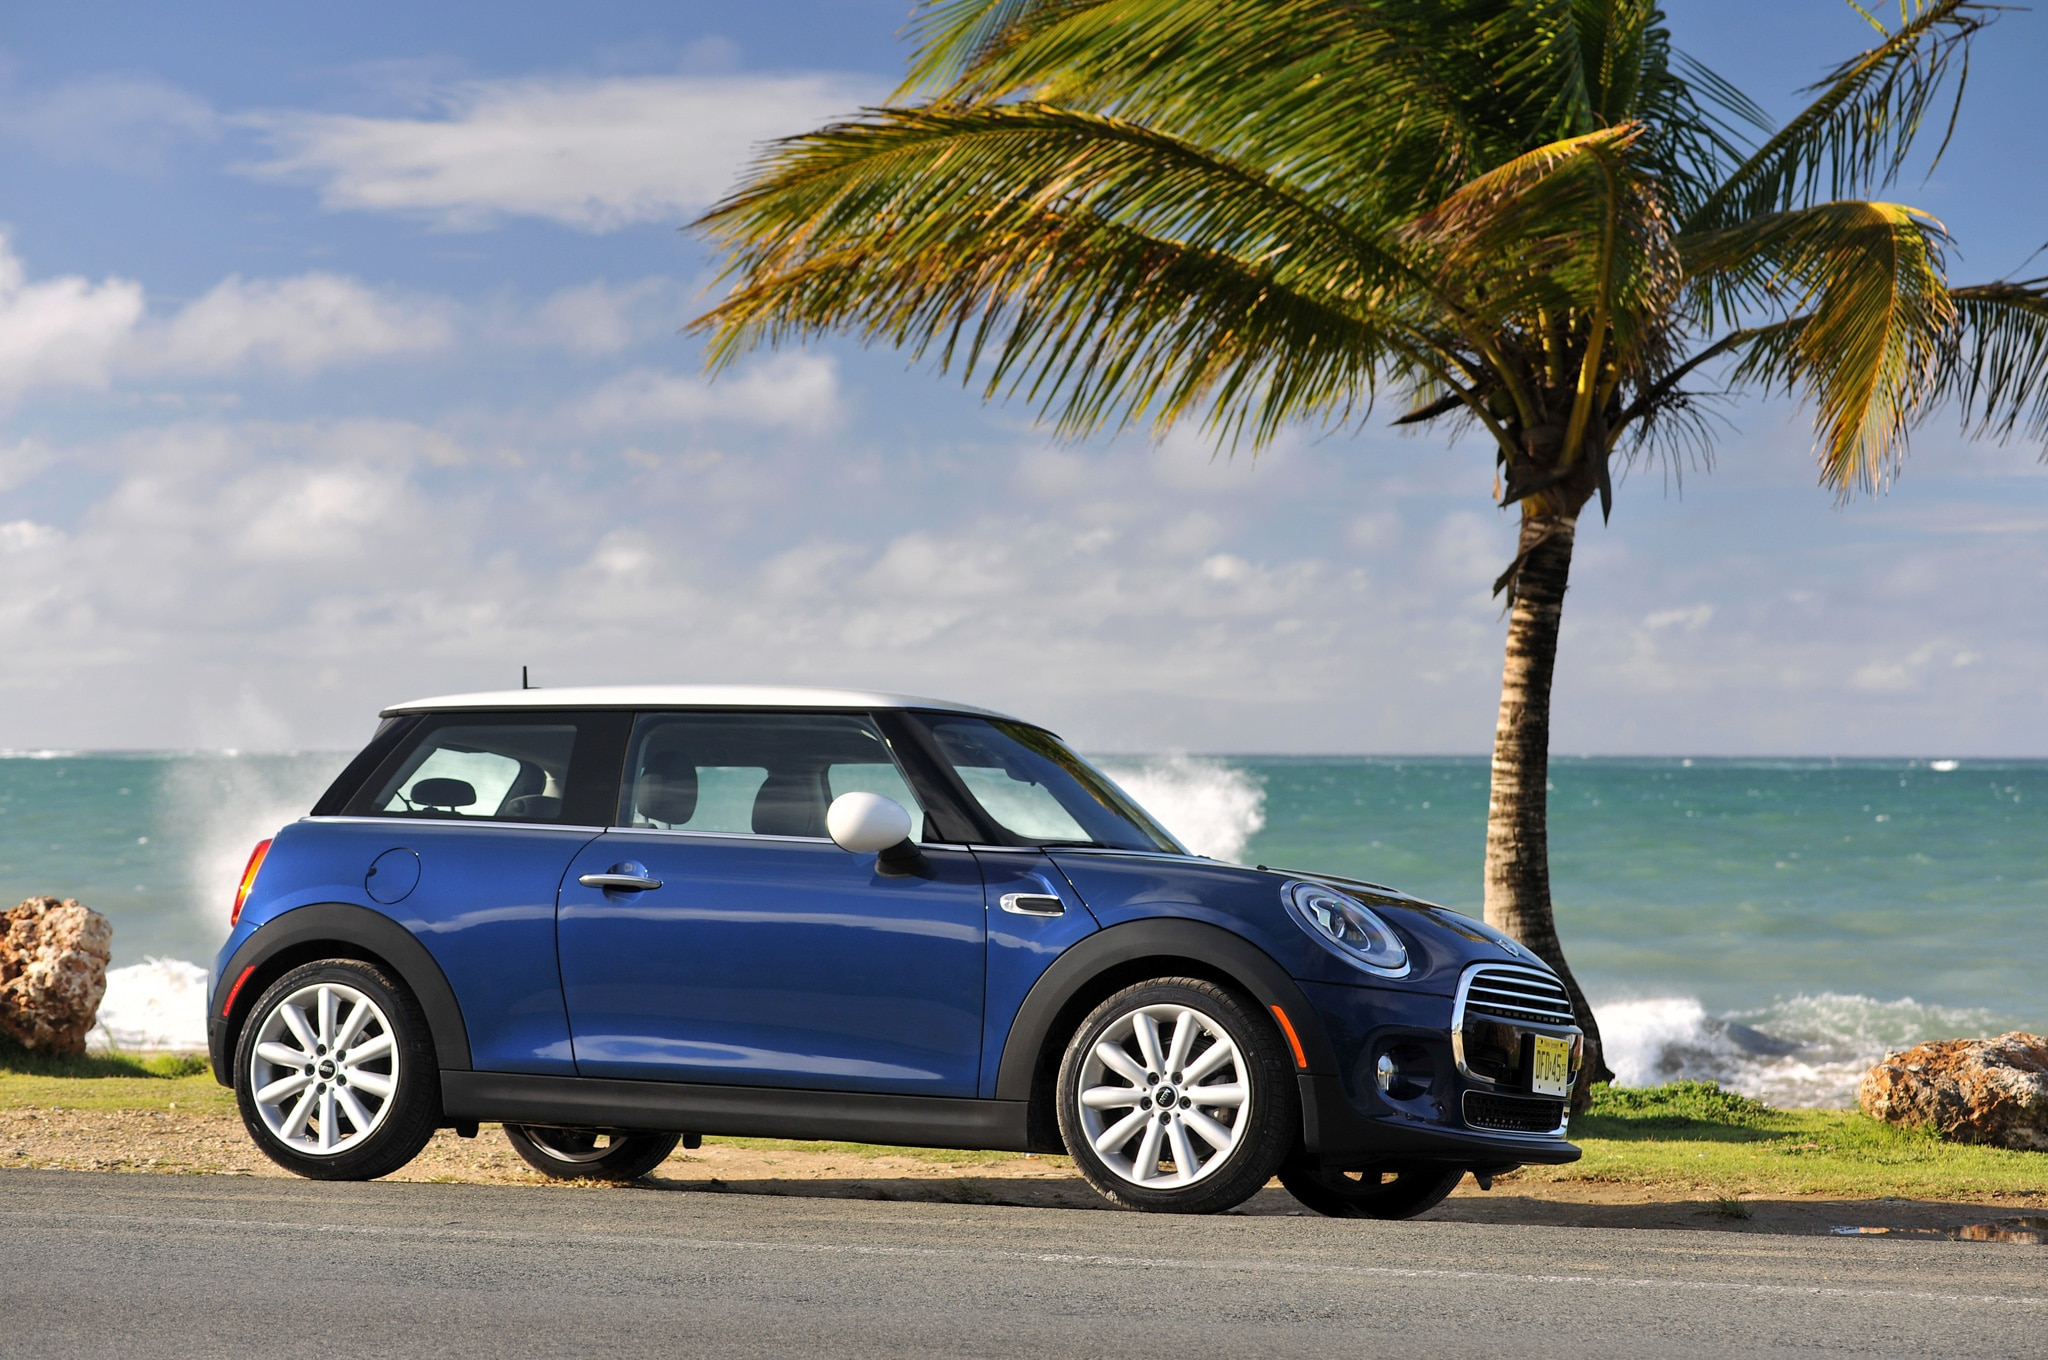 2014 Mini Cooper Side View On Coastline 22